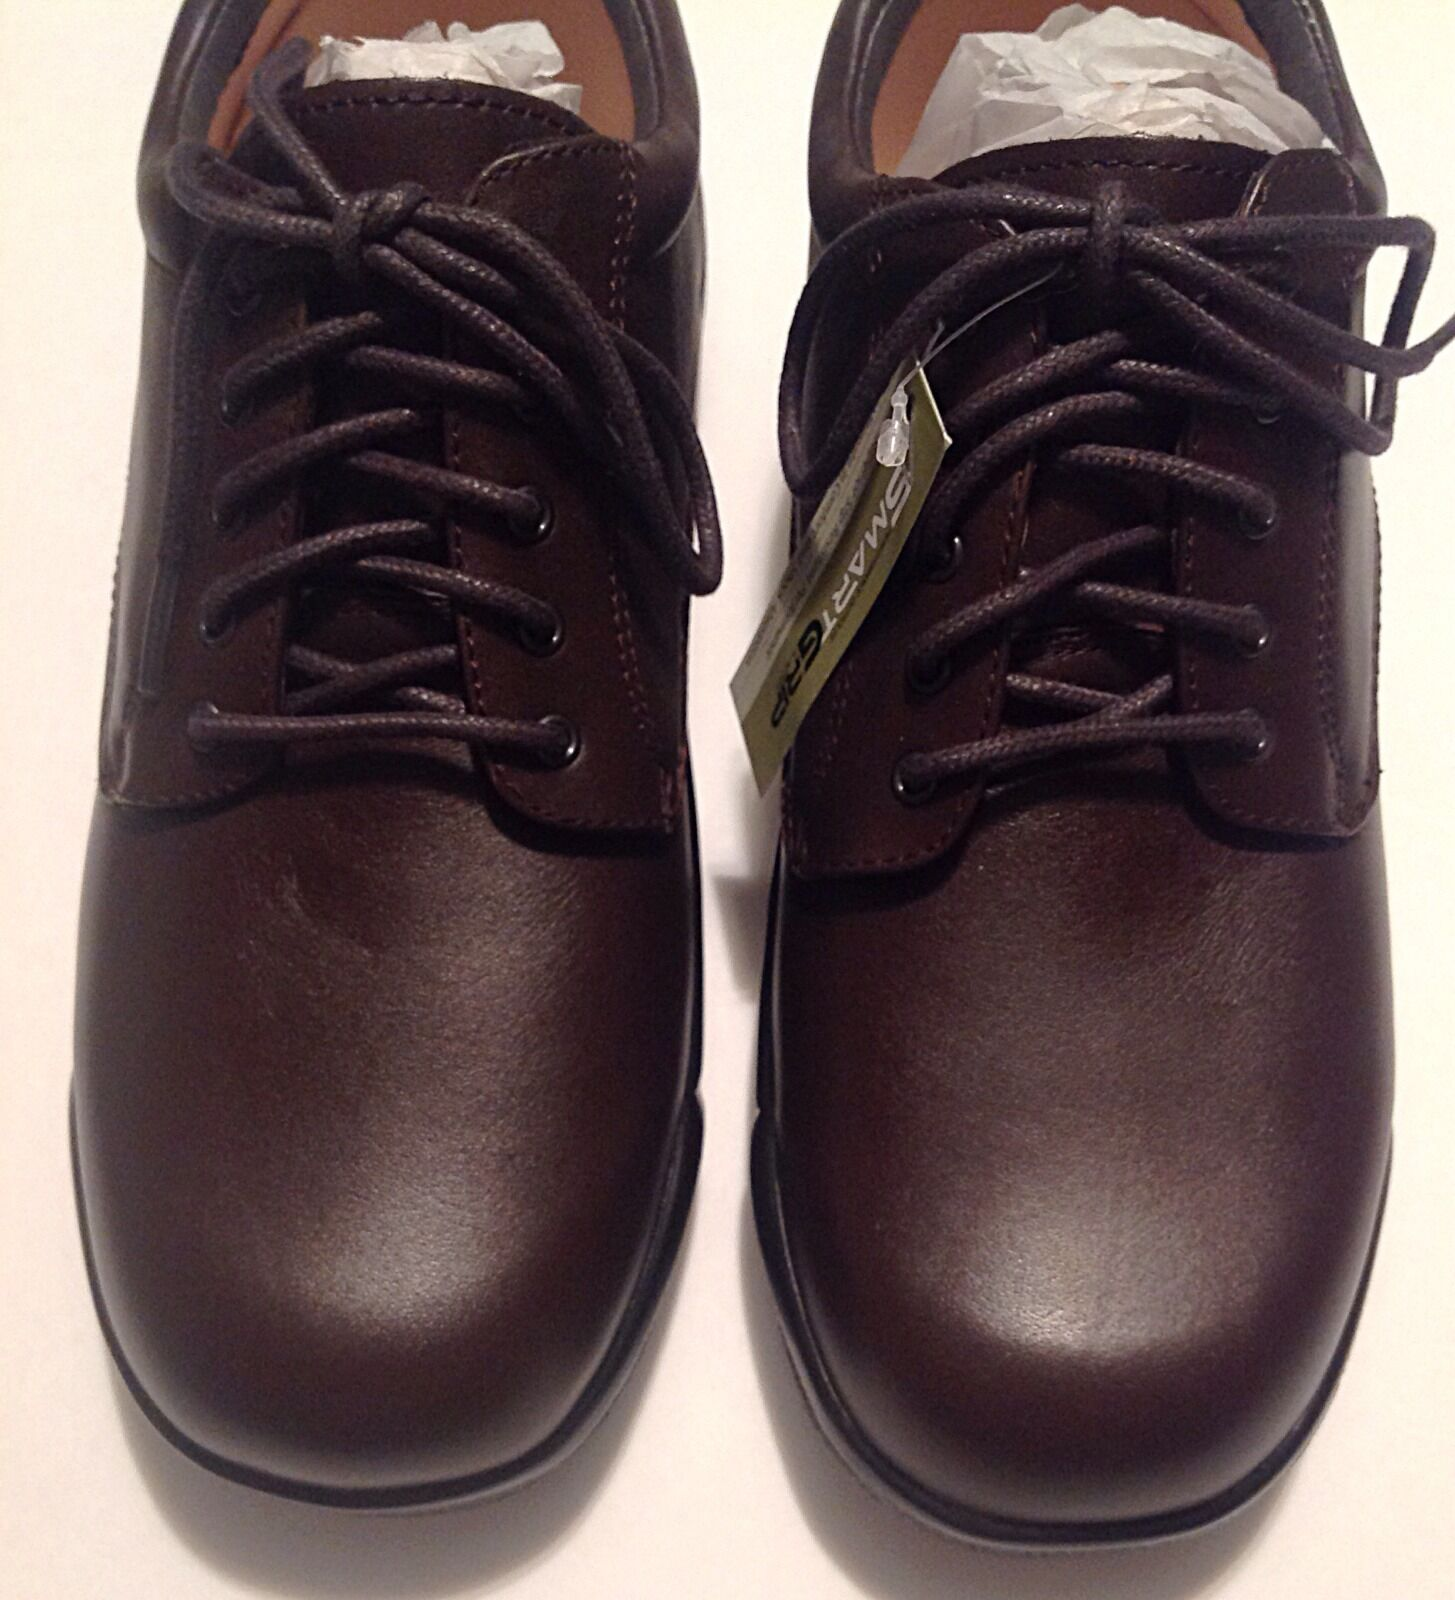 Apex Conform Shoes Oxford Brown Full Grain Leather 9.5M Size 9.5M Leather New Comfort 929122